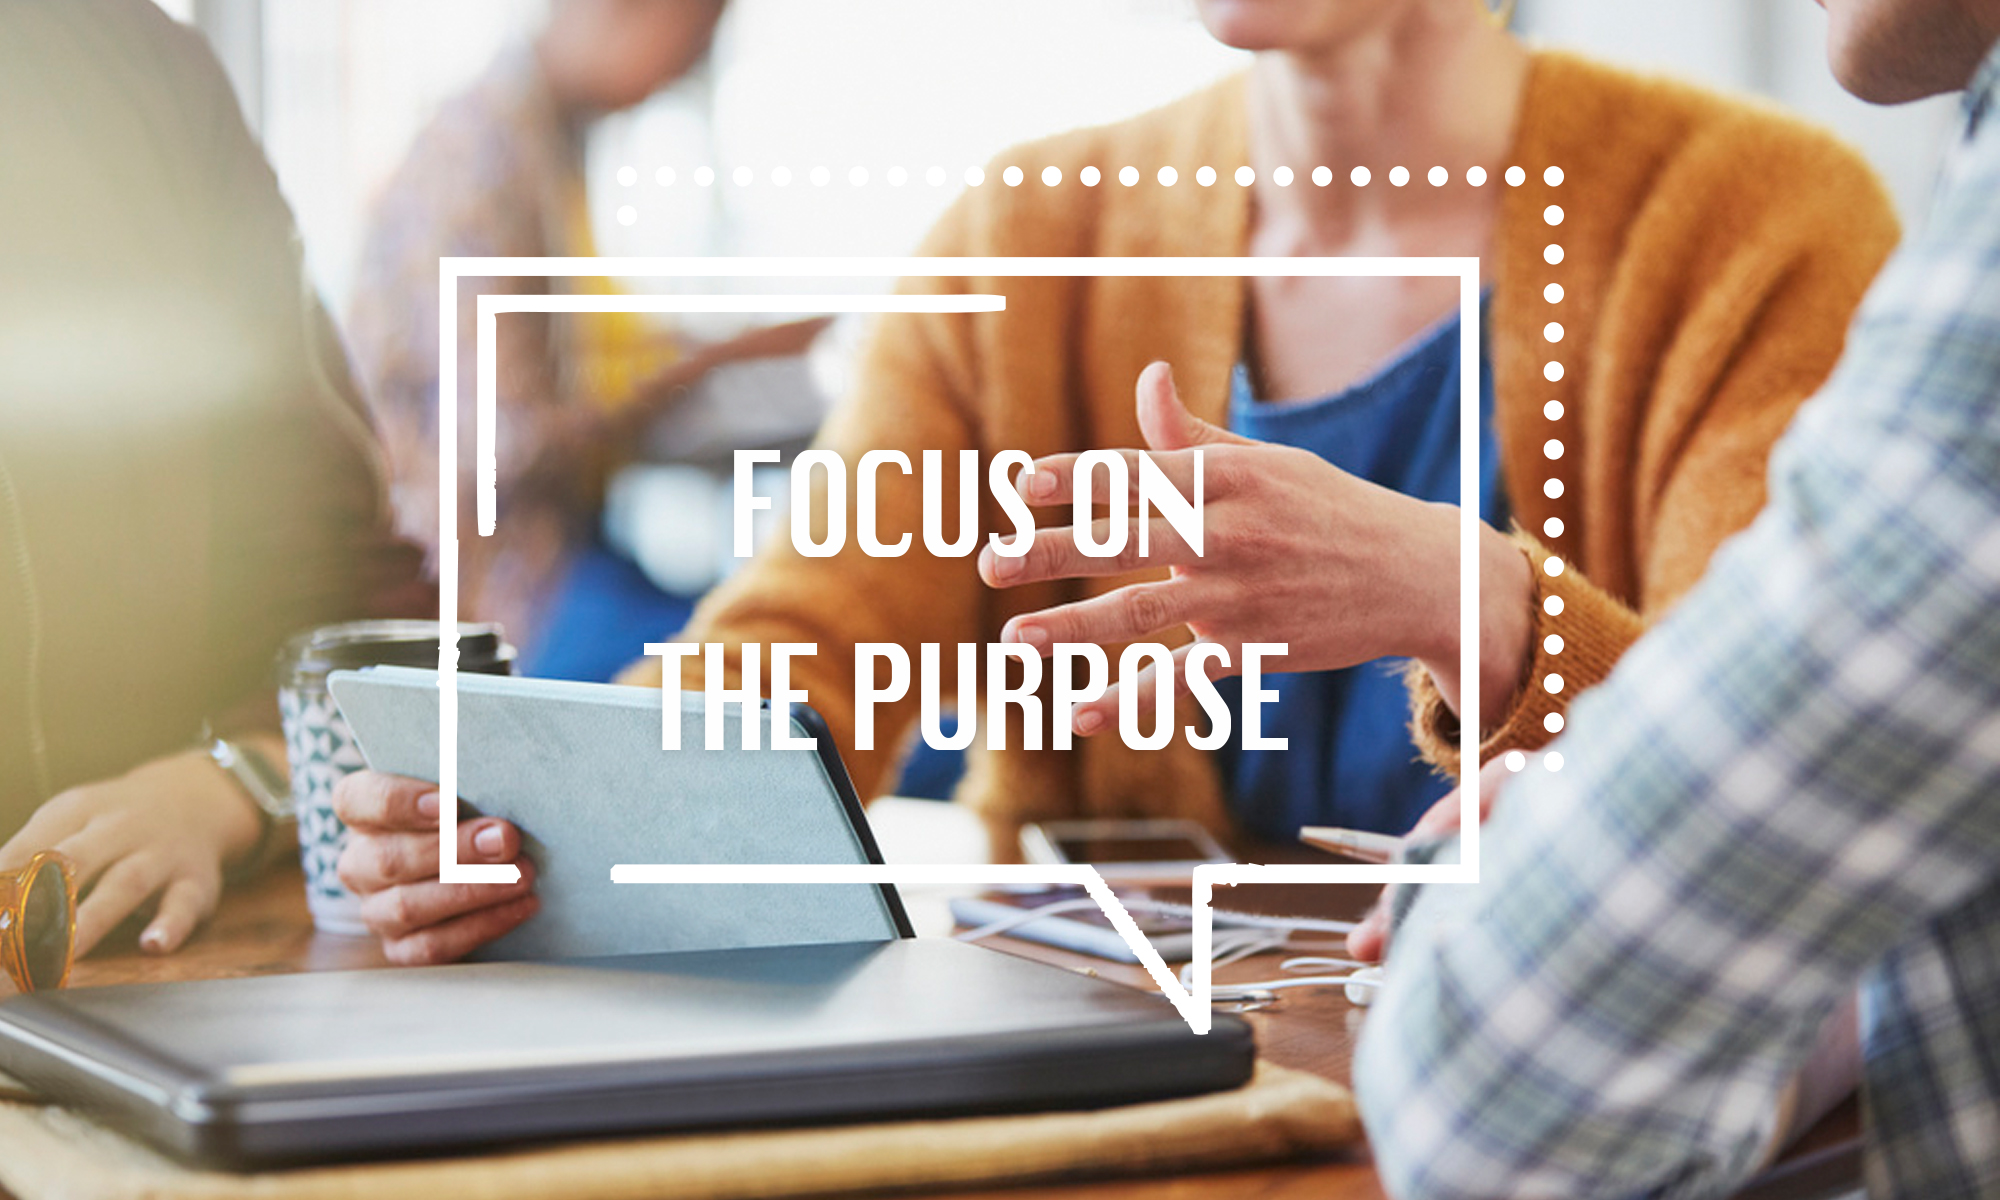 focus-on-the-purpose